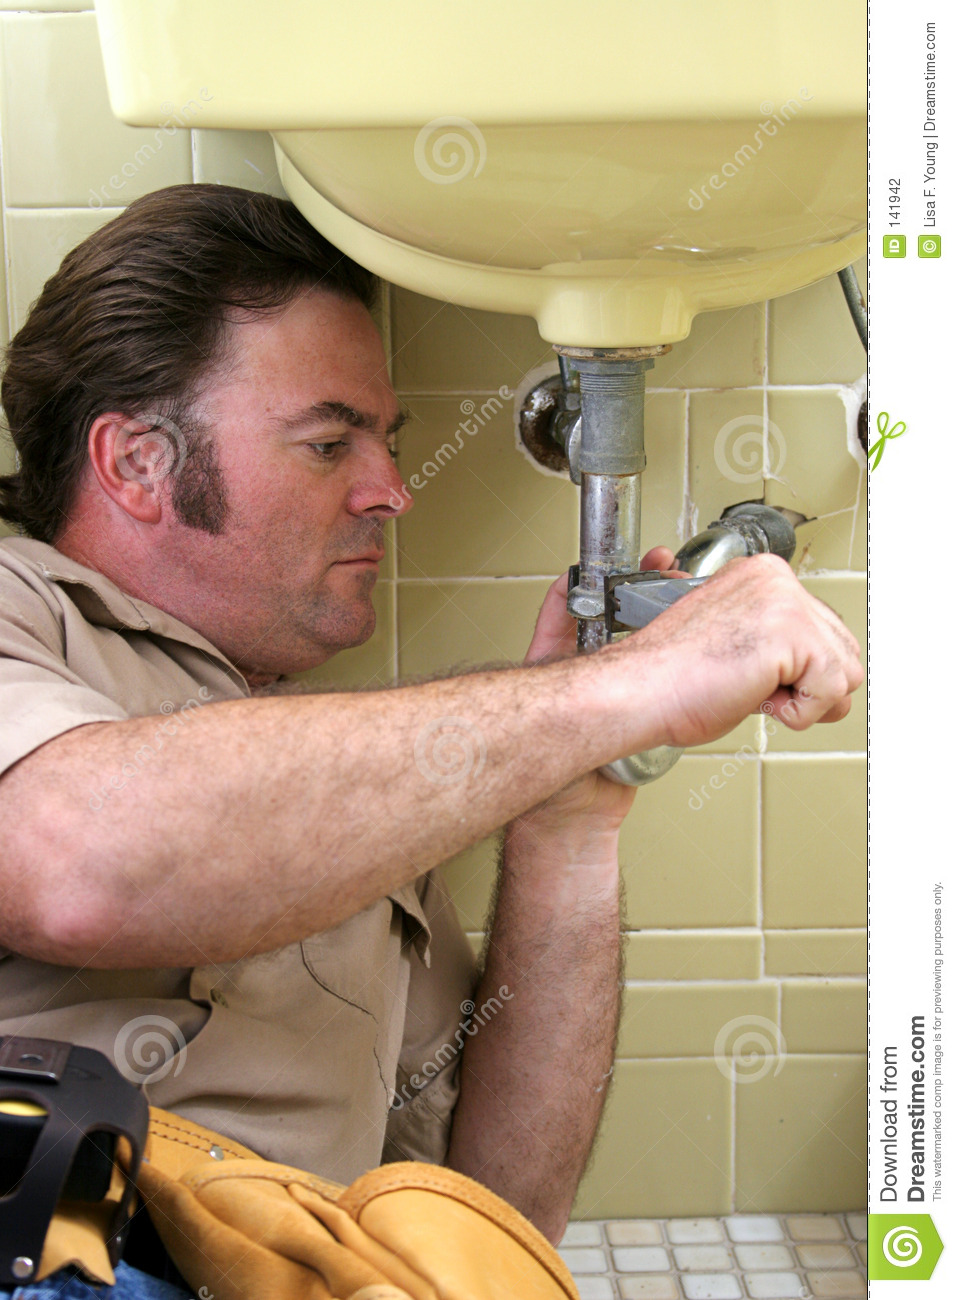 plumber-using-pipe-wrench-141942.jpg